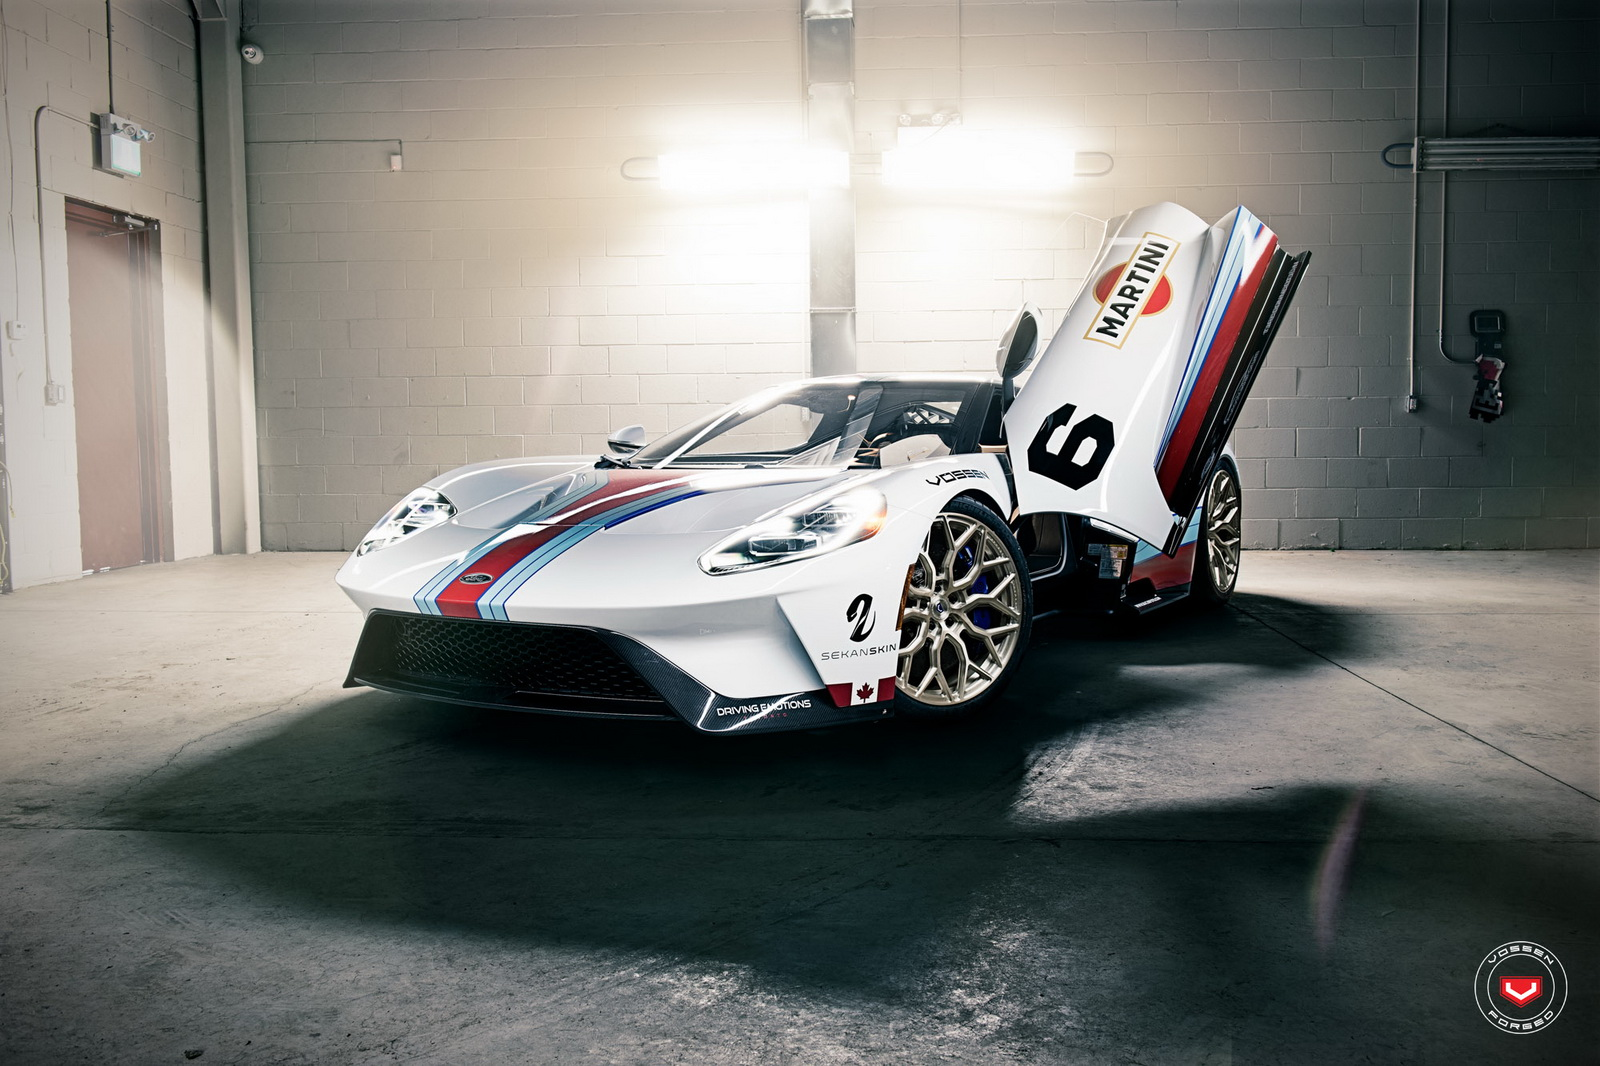 ford-gt-martini-livery-vossen-wheels-2